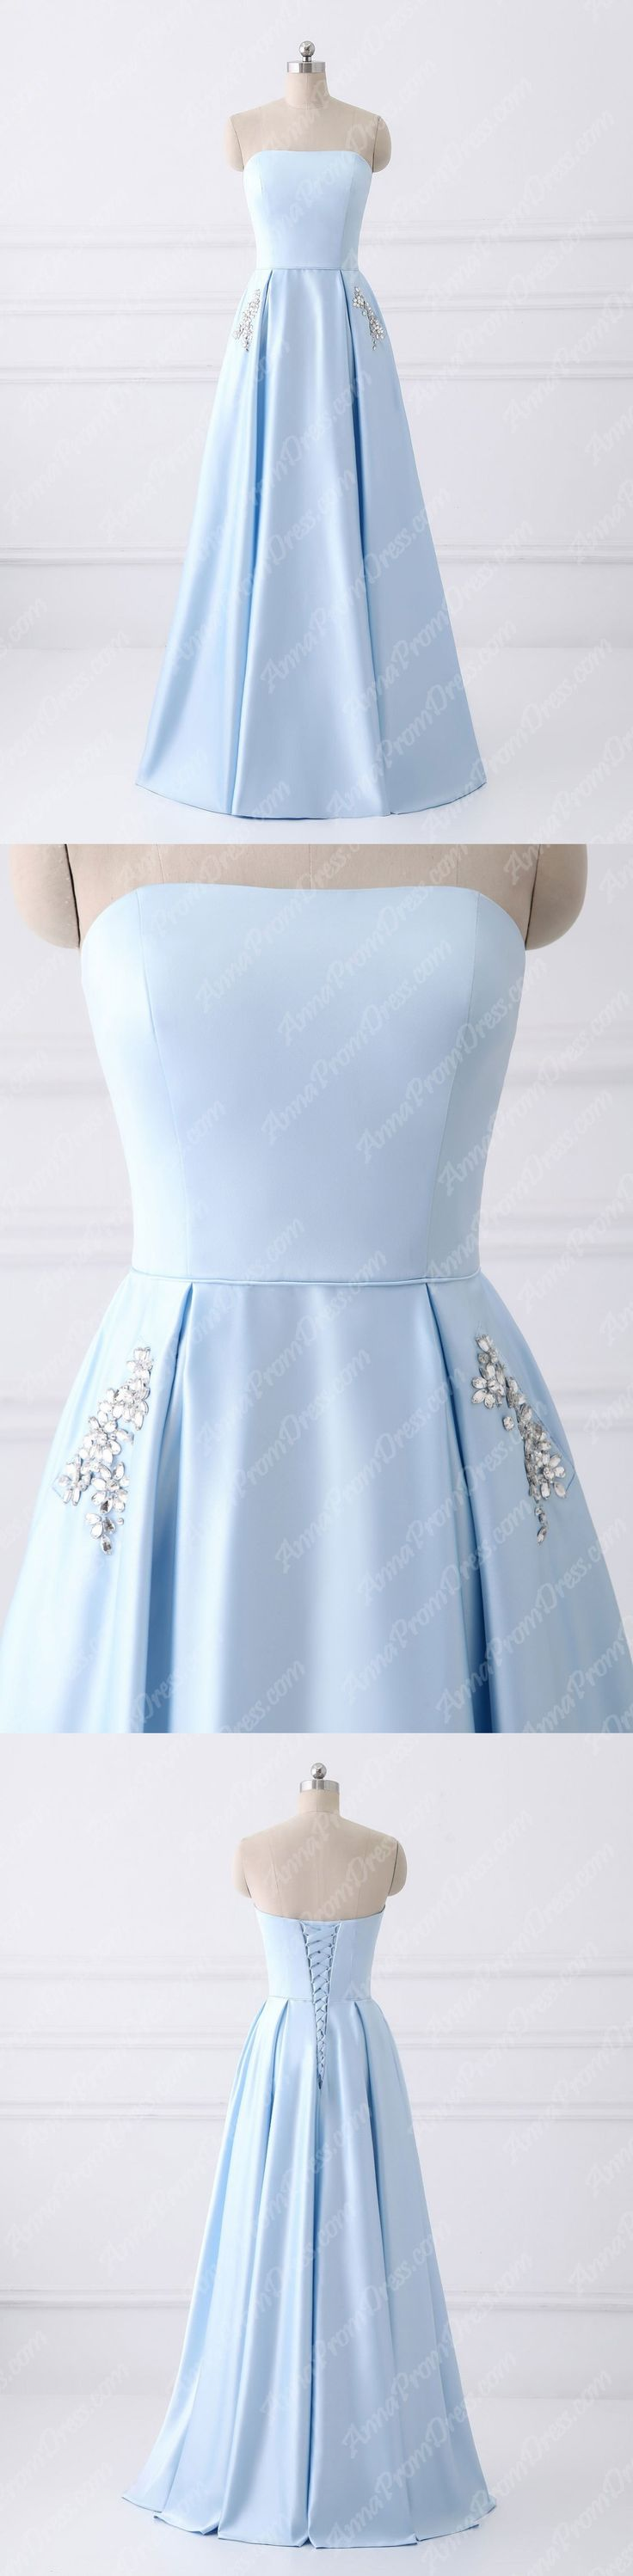 prom dresses long,prom dresses for teens,prom dresses boho,prom dresses cheap,junior prom dresses,beautiful prom dresses,prom dresses flowy,prom dresses 2018,gorgeous prom dresses,prom dresses 2017,prom dresses unique,prom dresses elegant,prom dresses largos,prom dresses graduacion,prom dresses classy,prom dresses modest,prom dresses simple,prom dresses strapless,prom dresses a line  #annapromdress #prom #promdress #evening #eveningdress #dance #longdress #longpromdress #fashion #style…